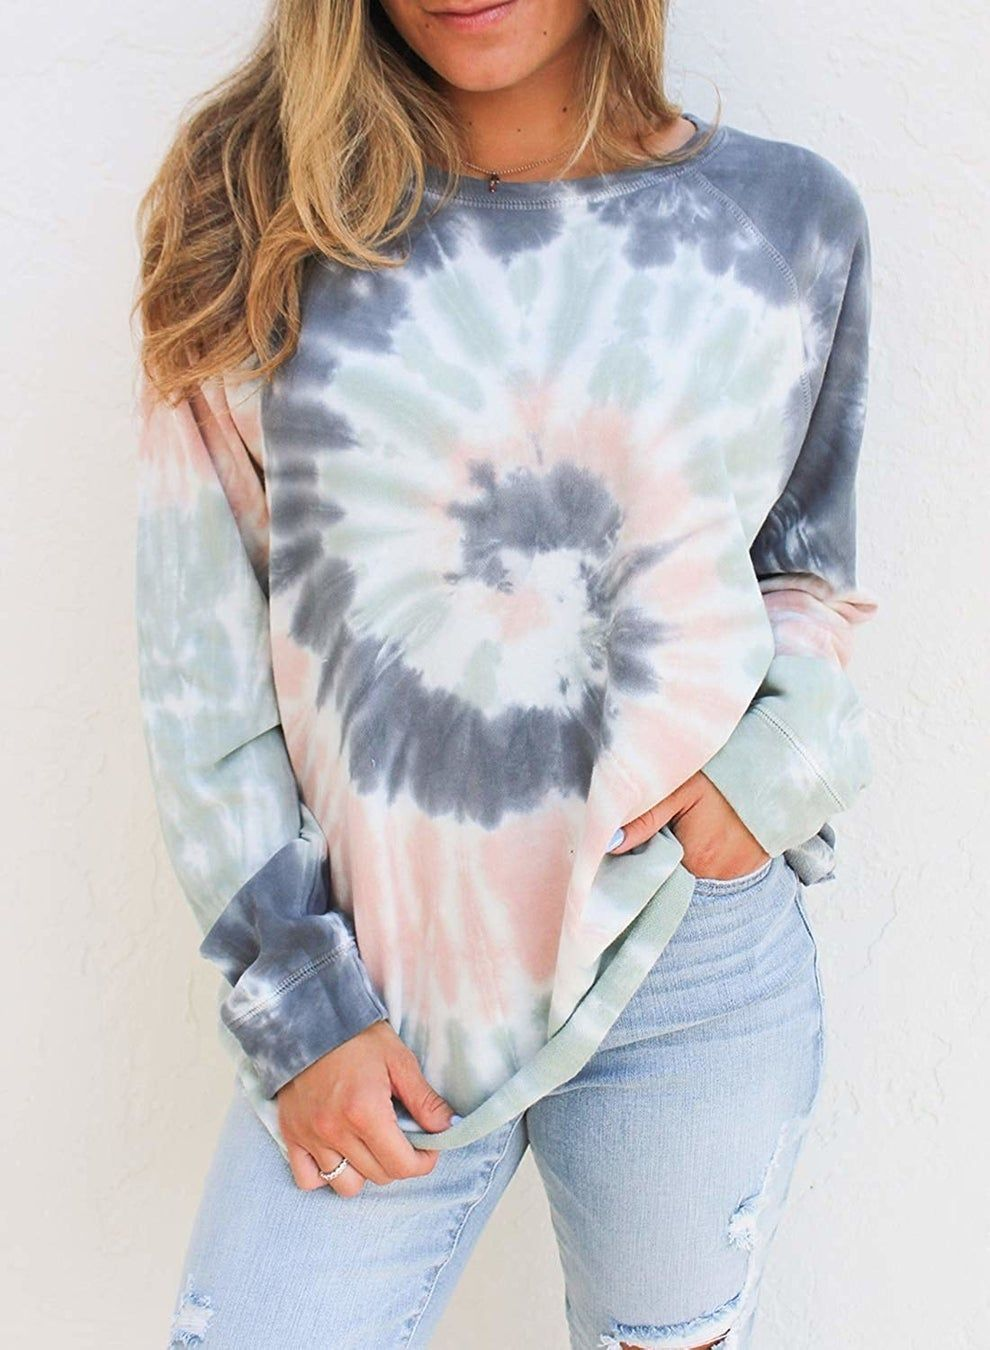 A Tie Dye Sweatshirt Order A Size Larger To Create A Carefree Californian Vibe That 39 S Just T Tie Dye Shirts Patterns Diy Tie Dye Shirts Tie Dye Outfits [ 1350 x 990 Pixel ]